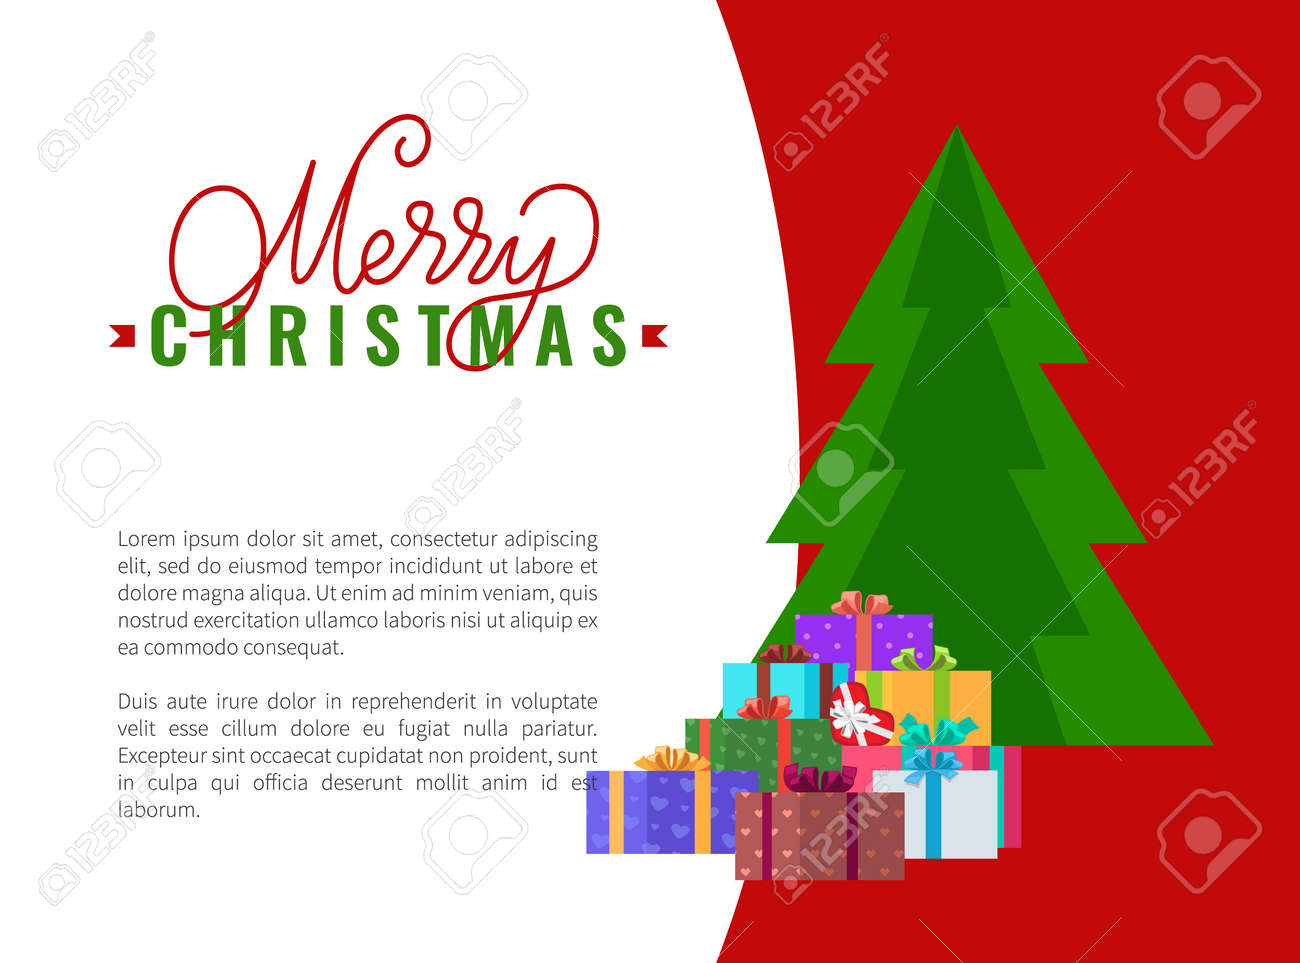 Merry Christmas Wishes Text.Merry Christmas Wishes Advertising Leaflet With Place For Text